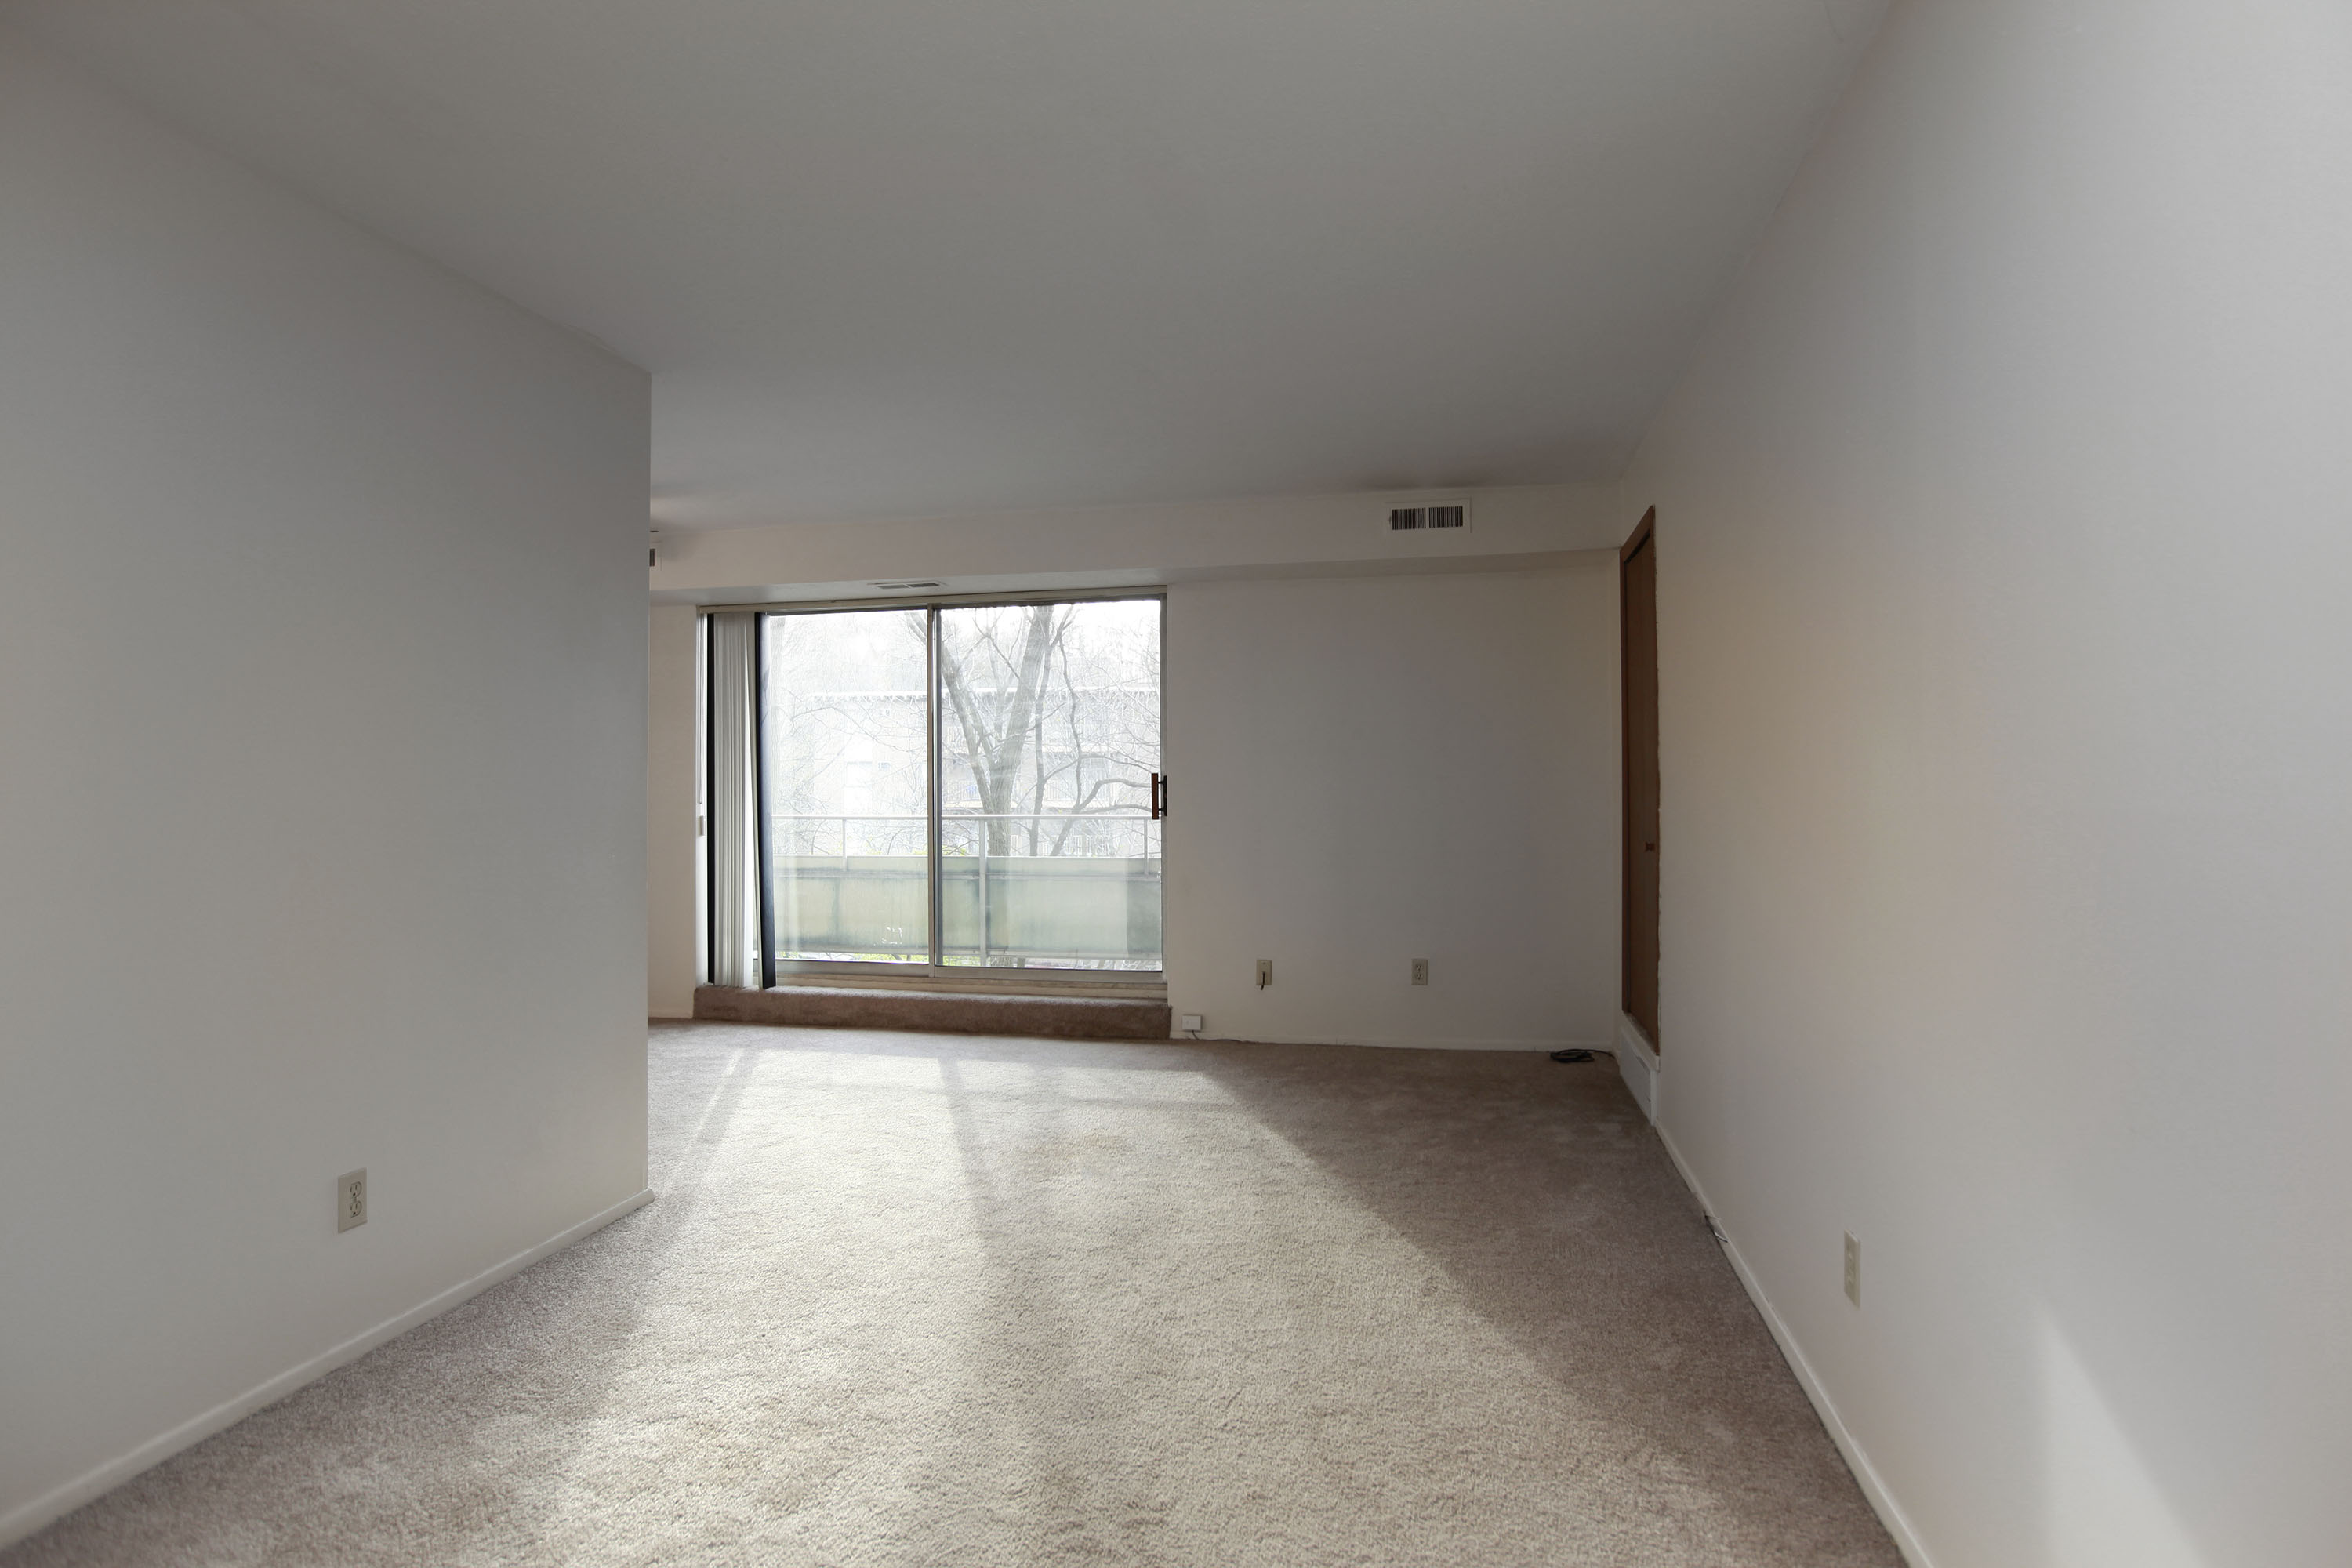 1C Living Room at the Greenridge on Euclid Apartments in Euclid, OH